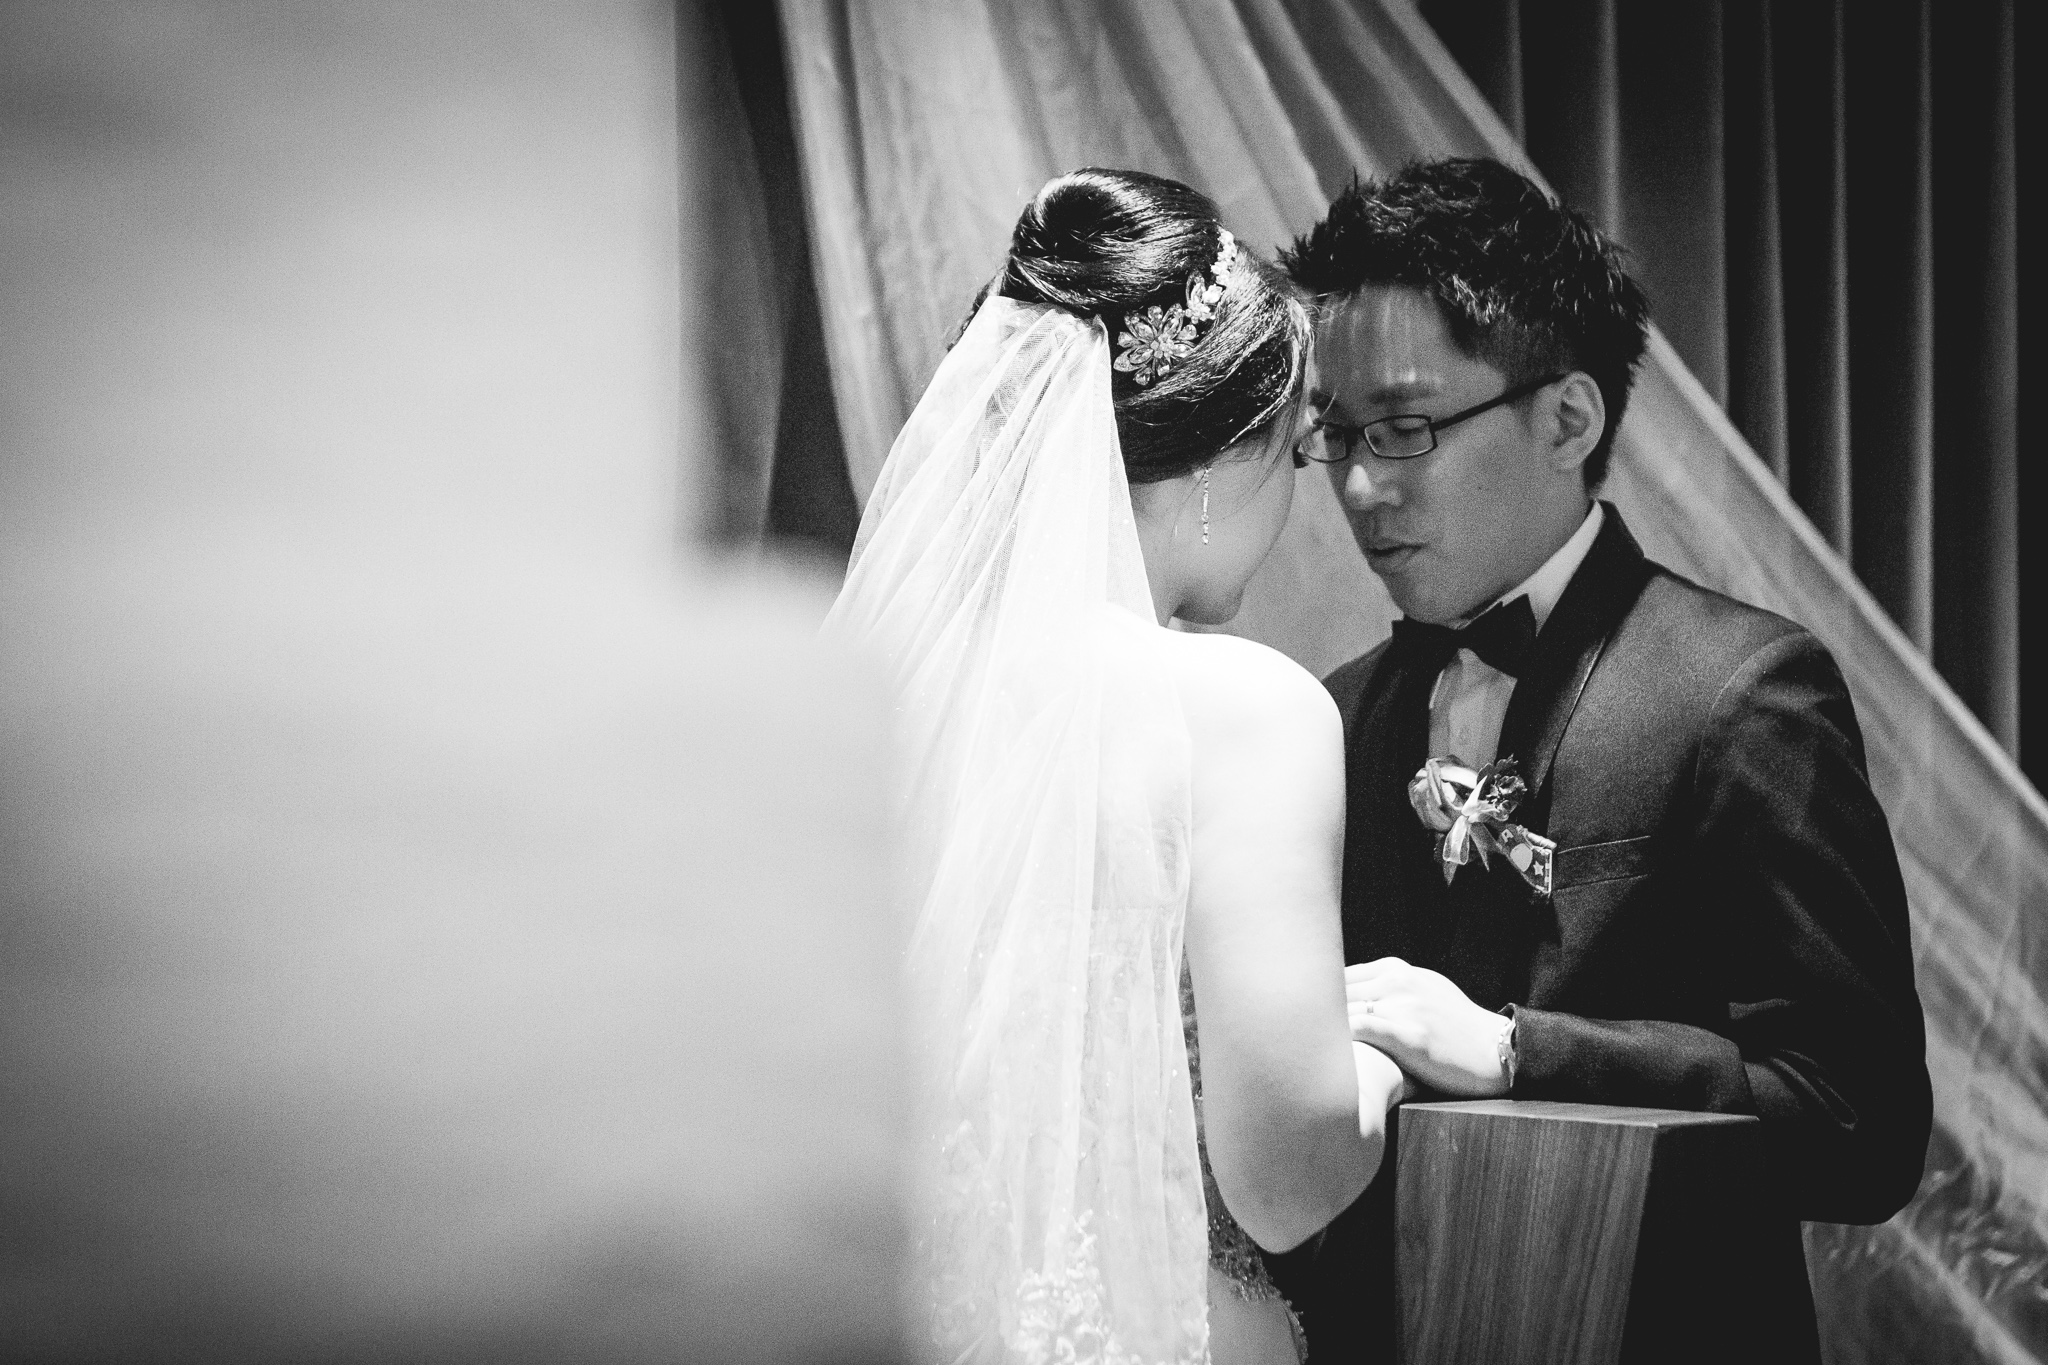 Yunfeng & Natalie Wedding Day Selects (Resized for sharing) -086.jpg